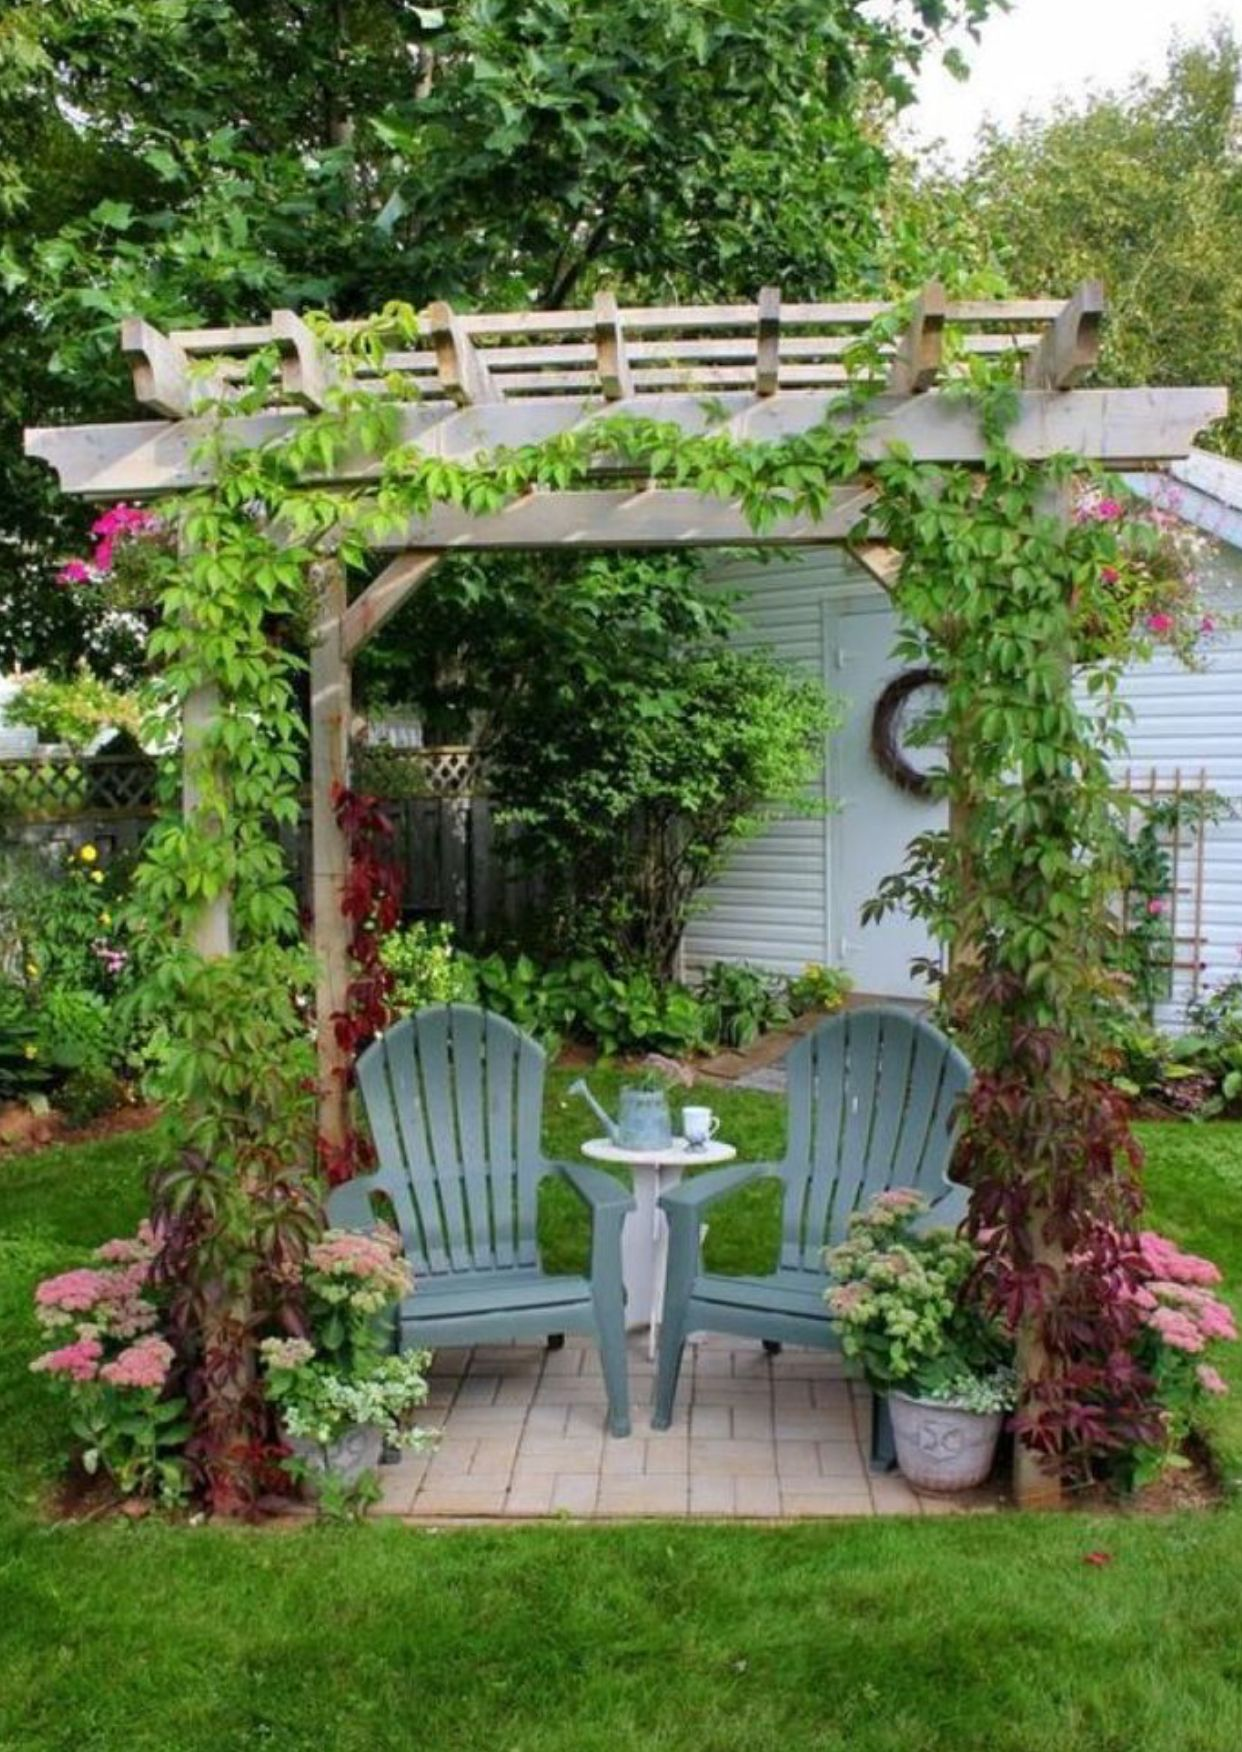 High Quality Garden Arbors Are Set Up As Shaded Places In Home Gardens Or Public Parks  Where One Can Relax And Rest. These Open Frameworks Are Typically Made Of  ...